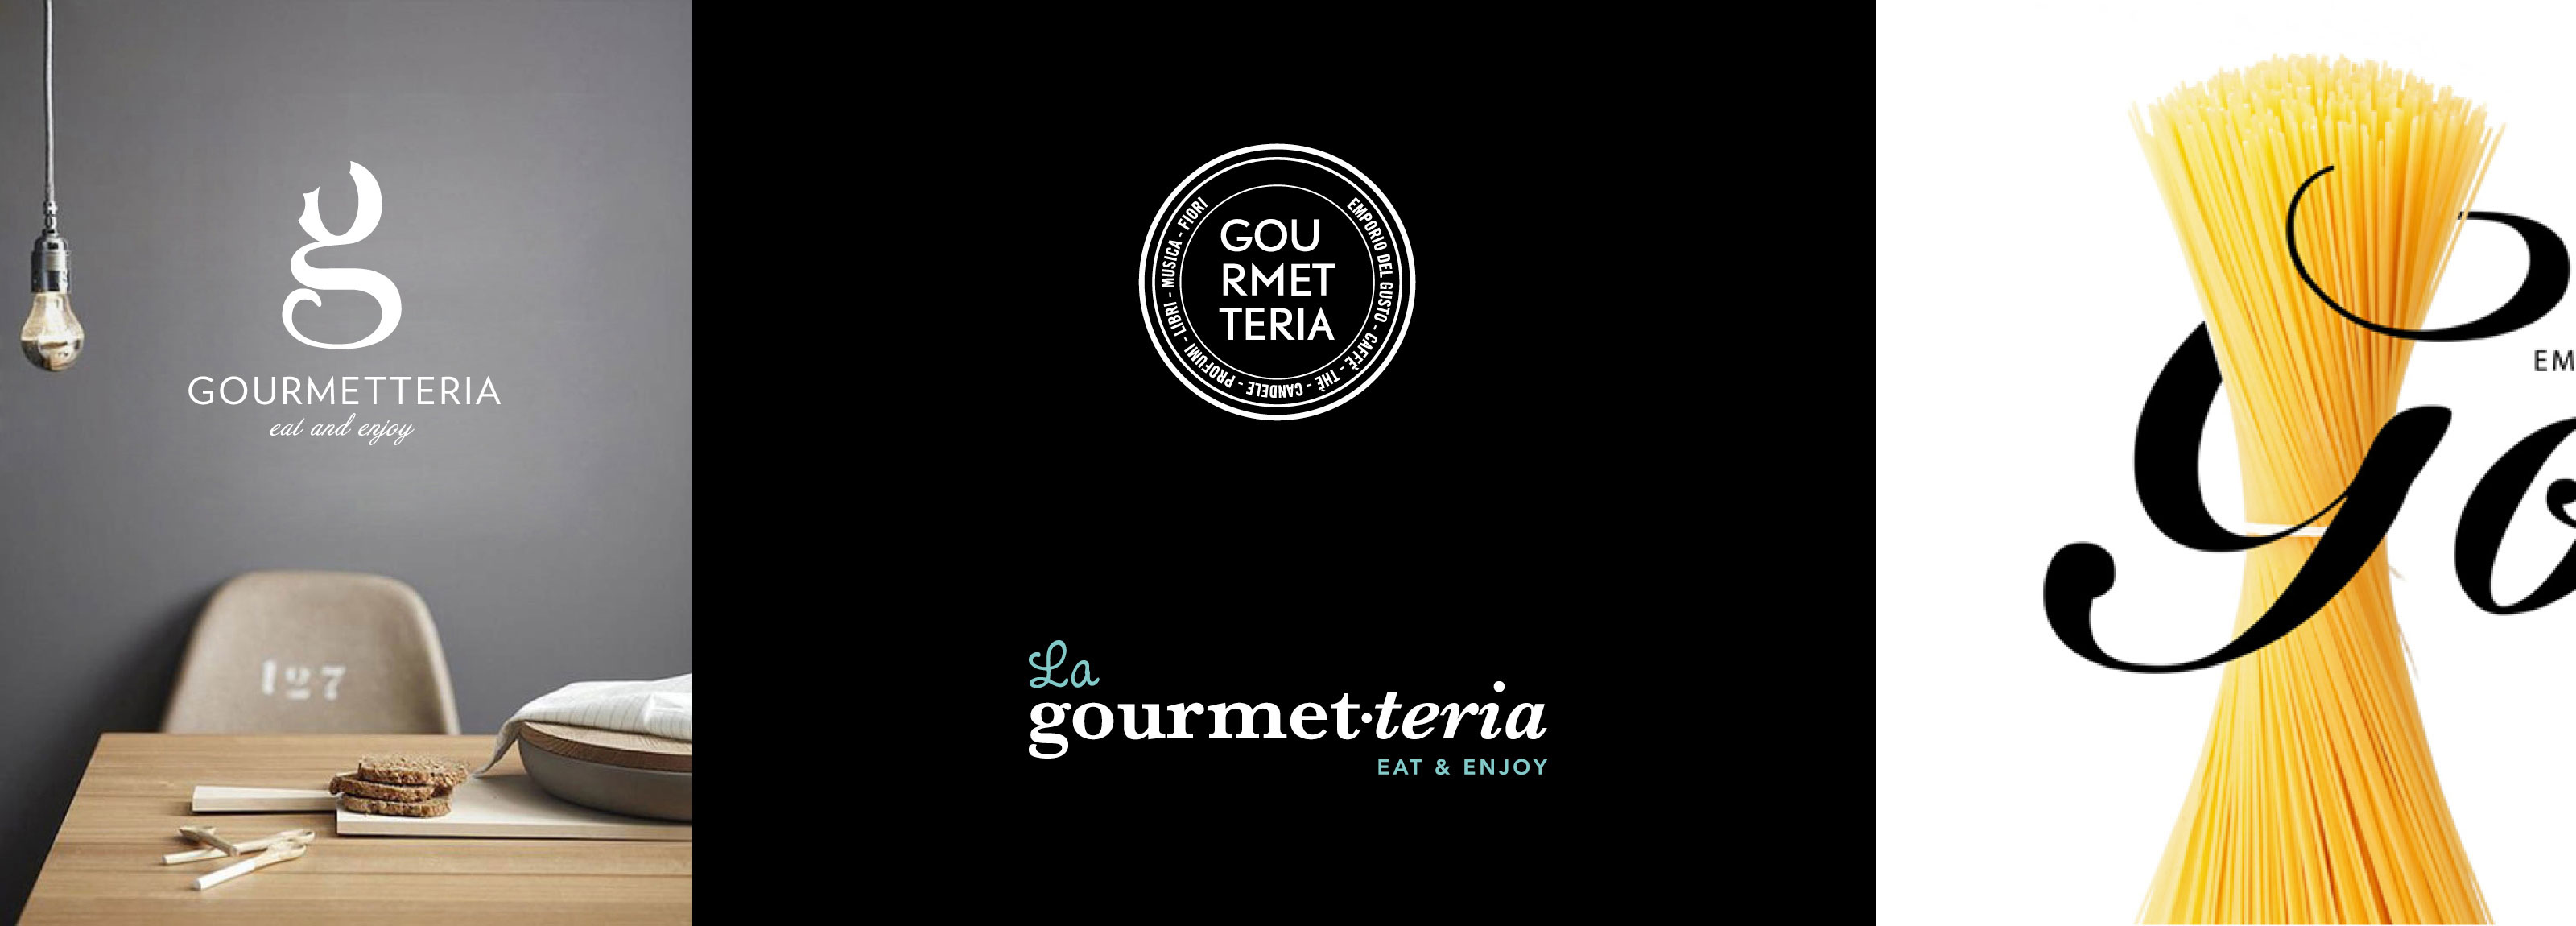 Hangar Design Group designed the new logo and the whole corporate identity project for Gourmetteria